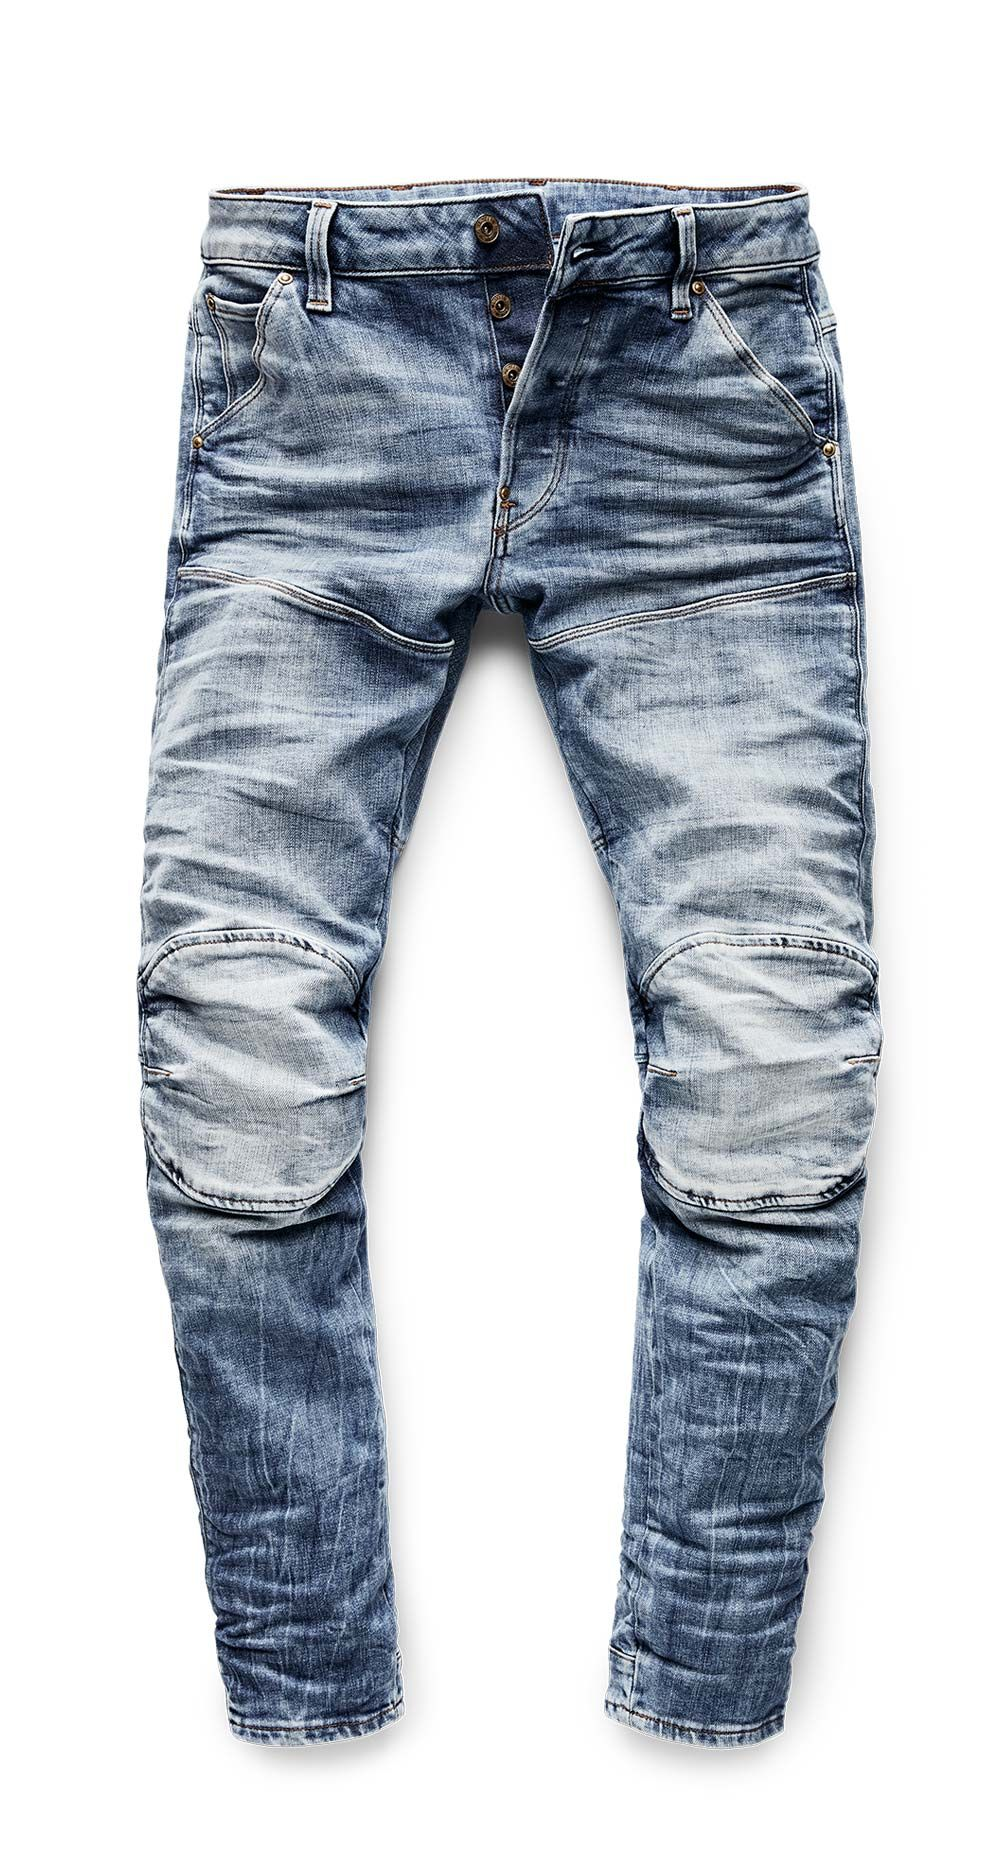 Experience the first ever 3D Denim: the G Star Elwood 5620